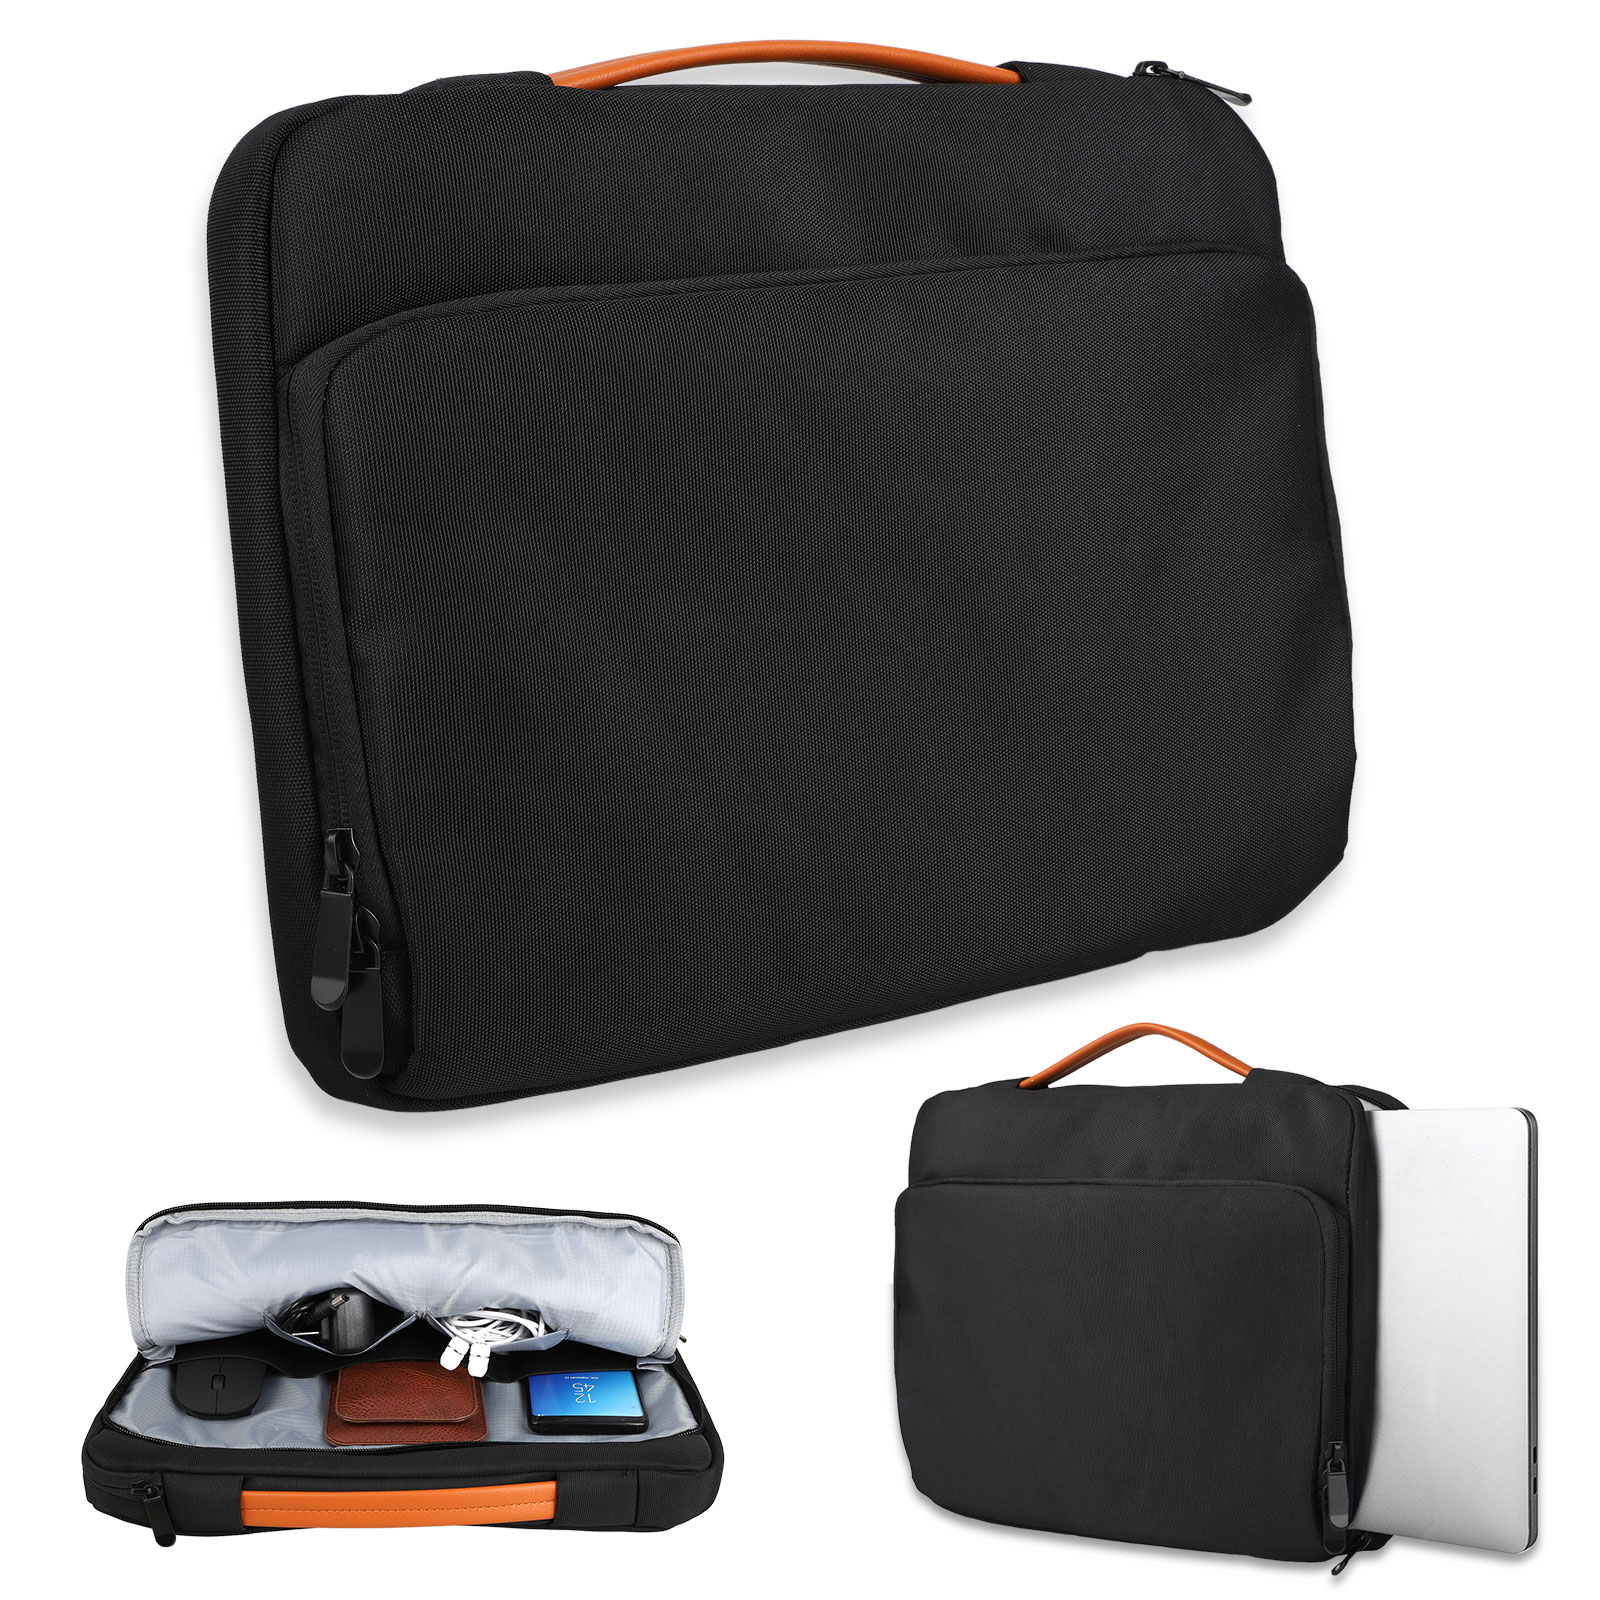 "Laptop Sleeve Case Protective Bag, Universal Laptop Handbag Pouch for 13"" 13.3"" 13.5"" 14"" NoteBook (Black)"